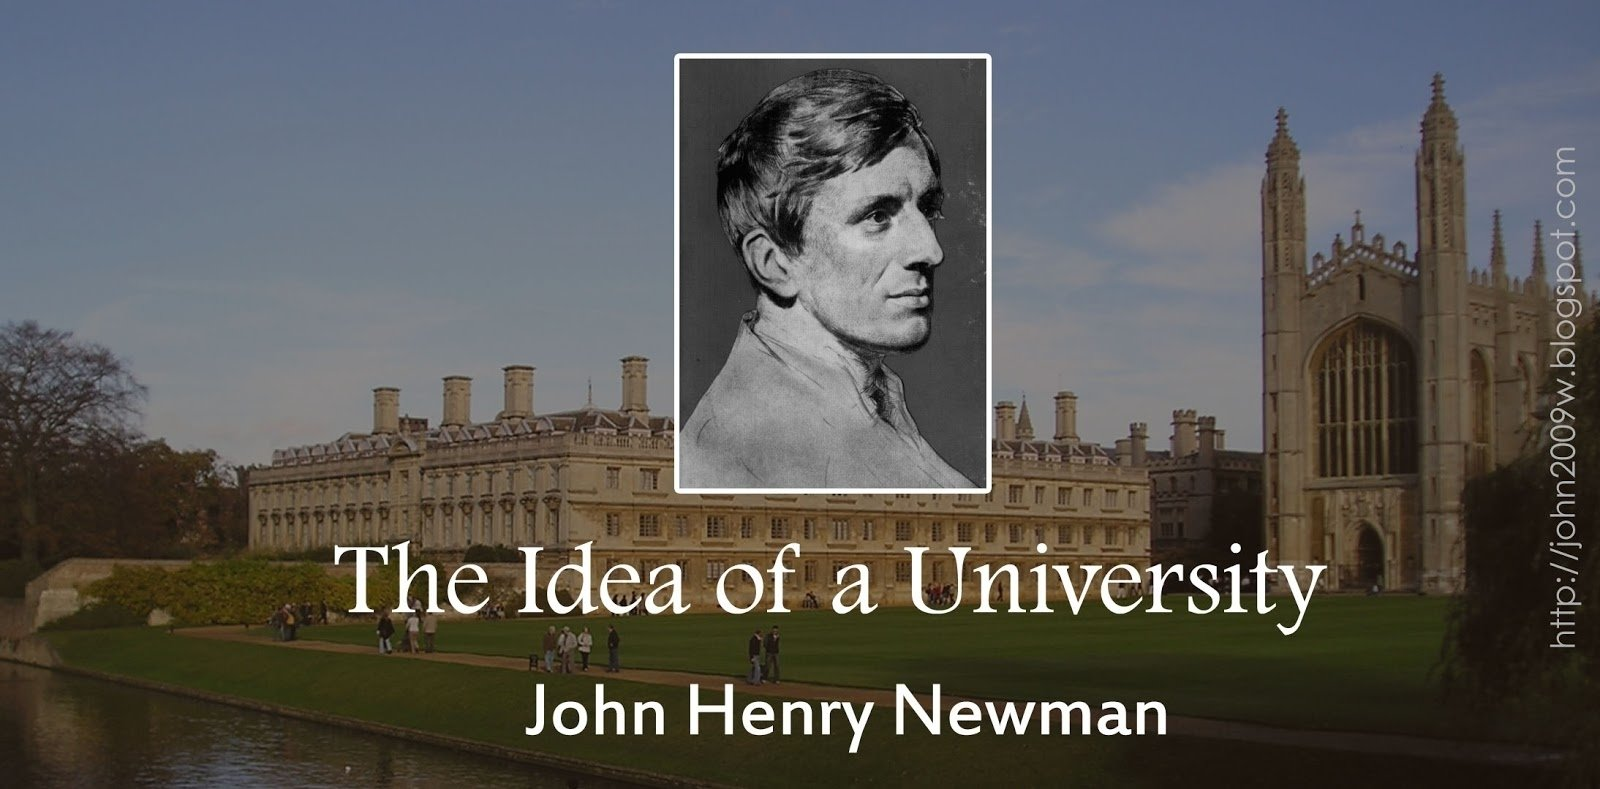 10 Awesome John Henry Newman The Idea Of A University february 2018 mini blog 2020